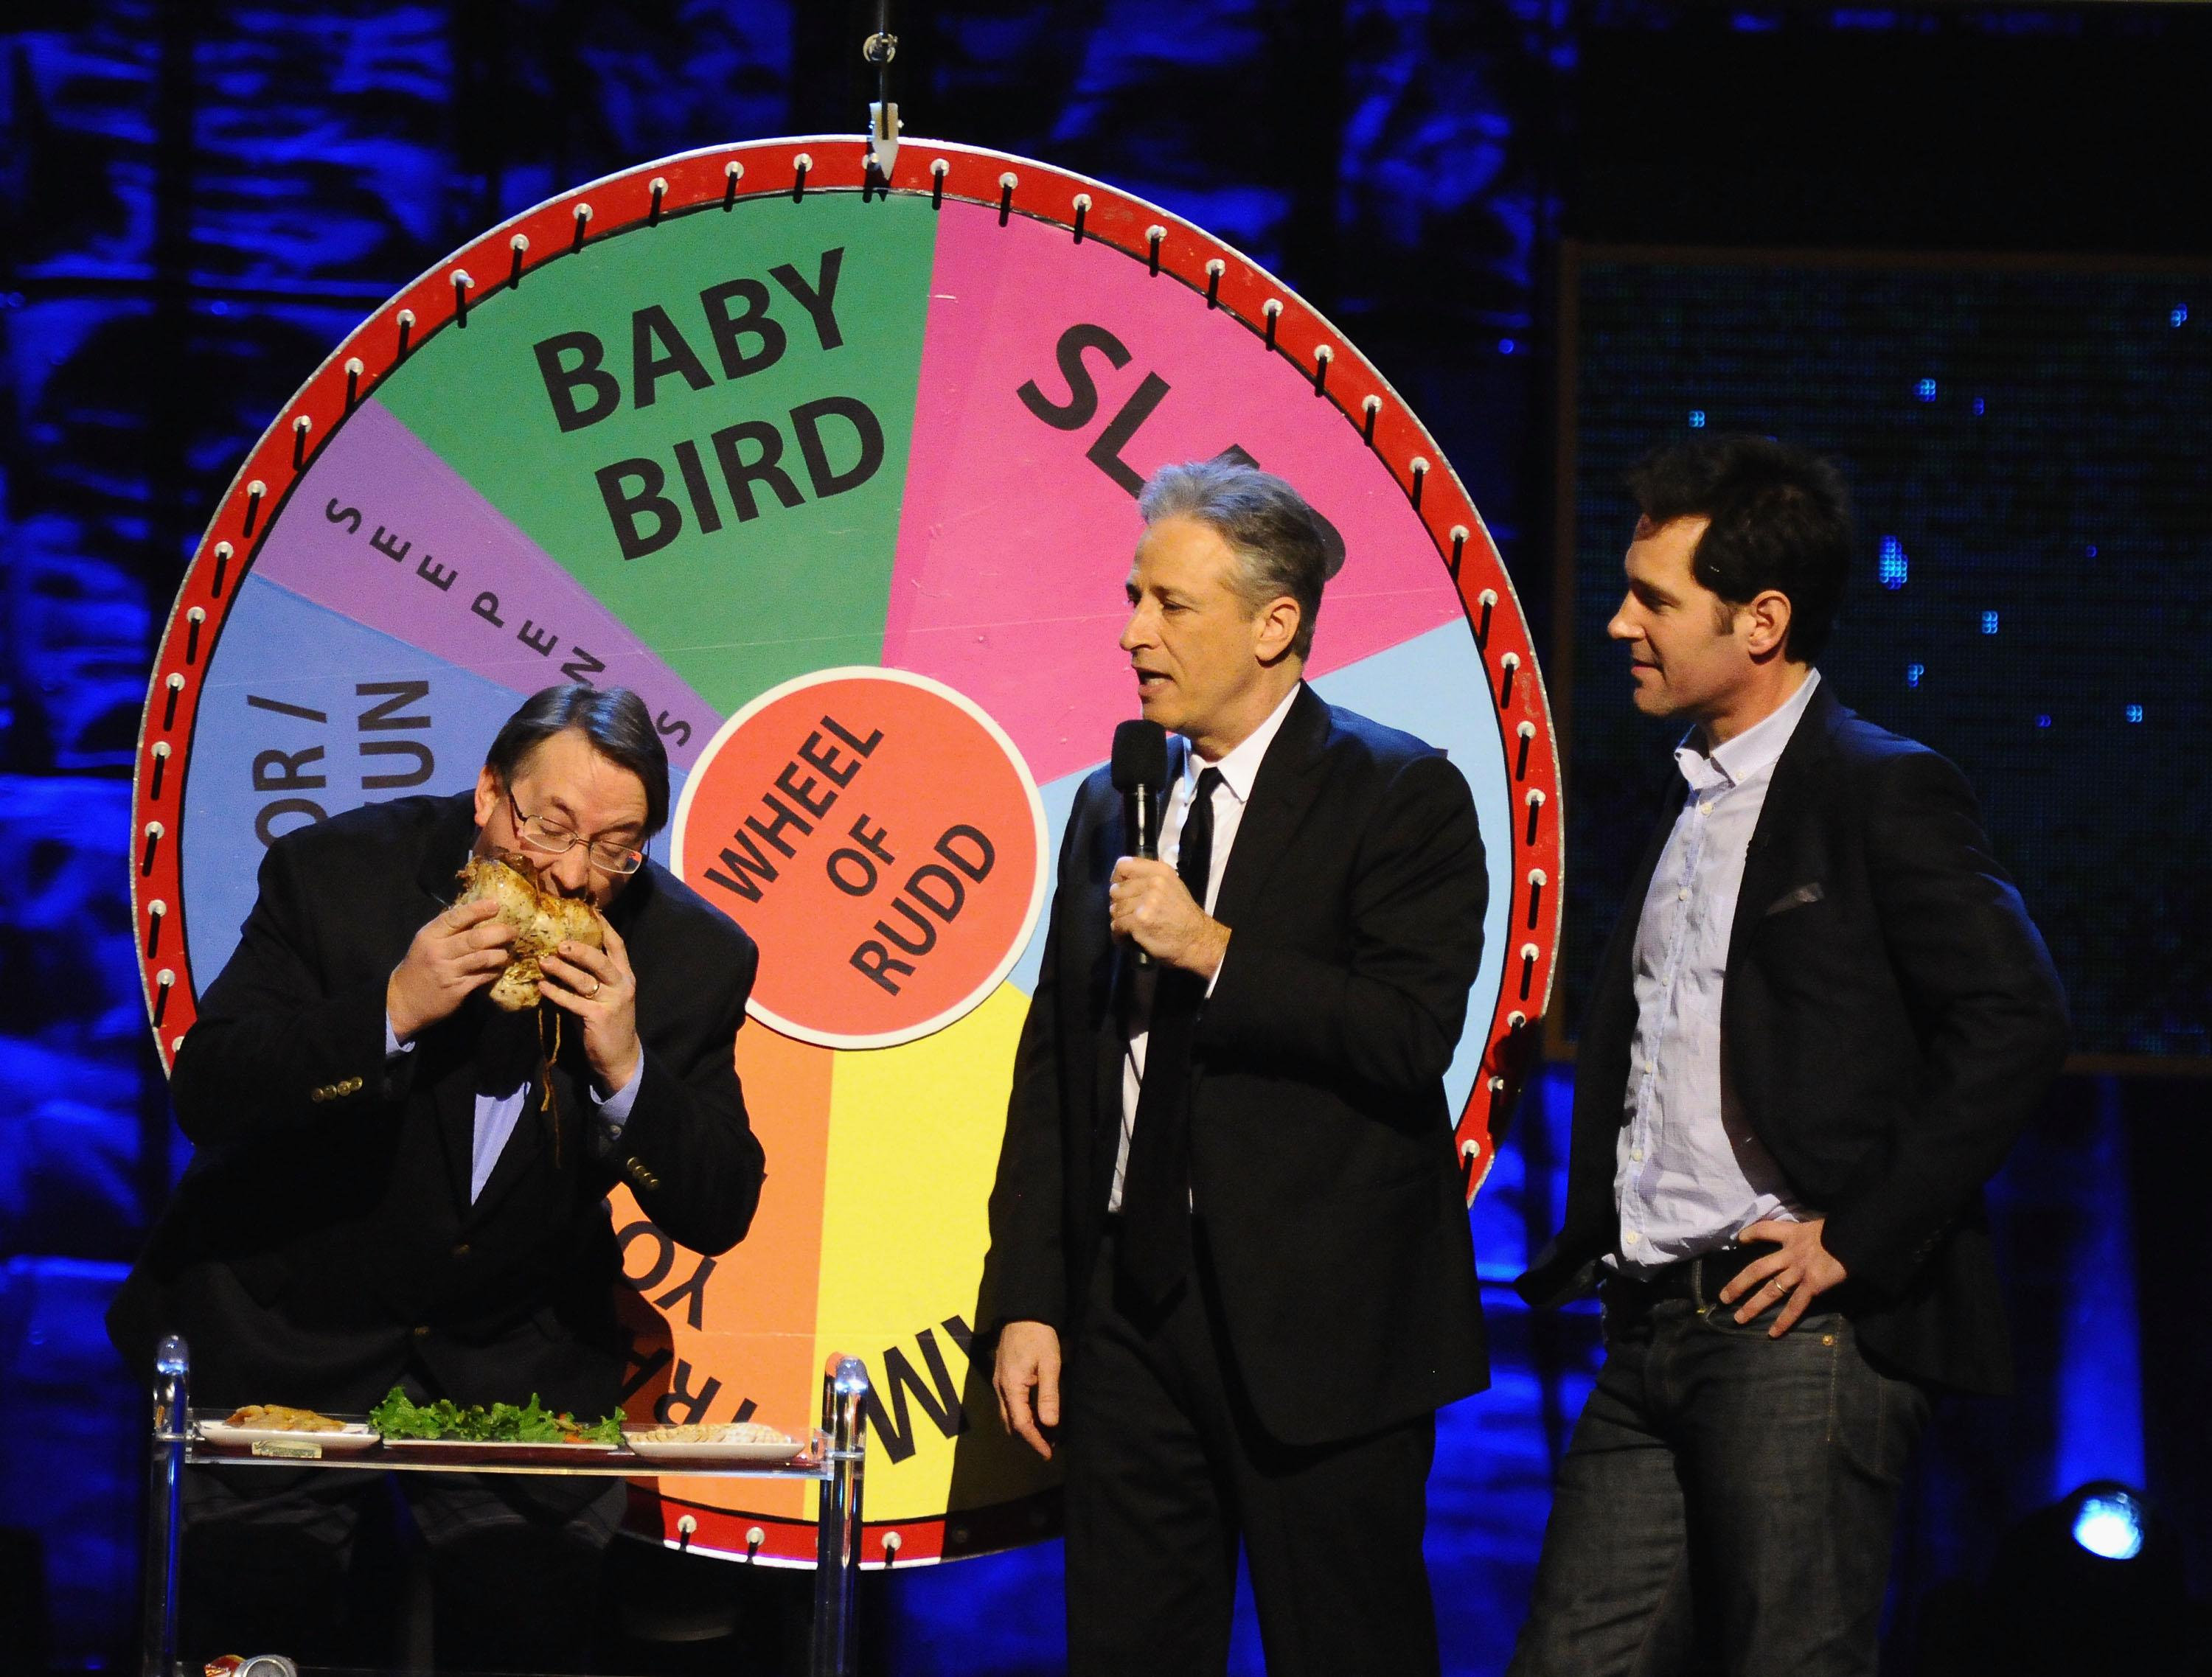 Paul Rudd, John Oliver, Louis C.K. Go All Out for 'Night of Too Many Stars' Fundraiser